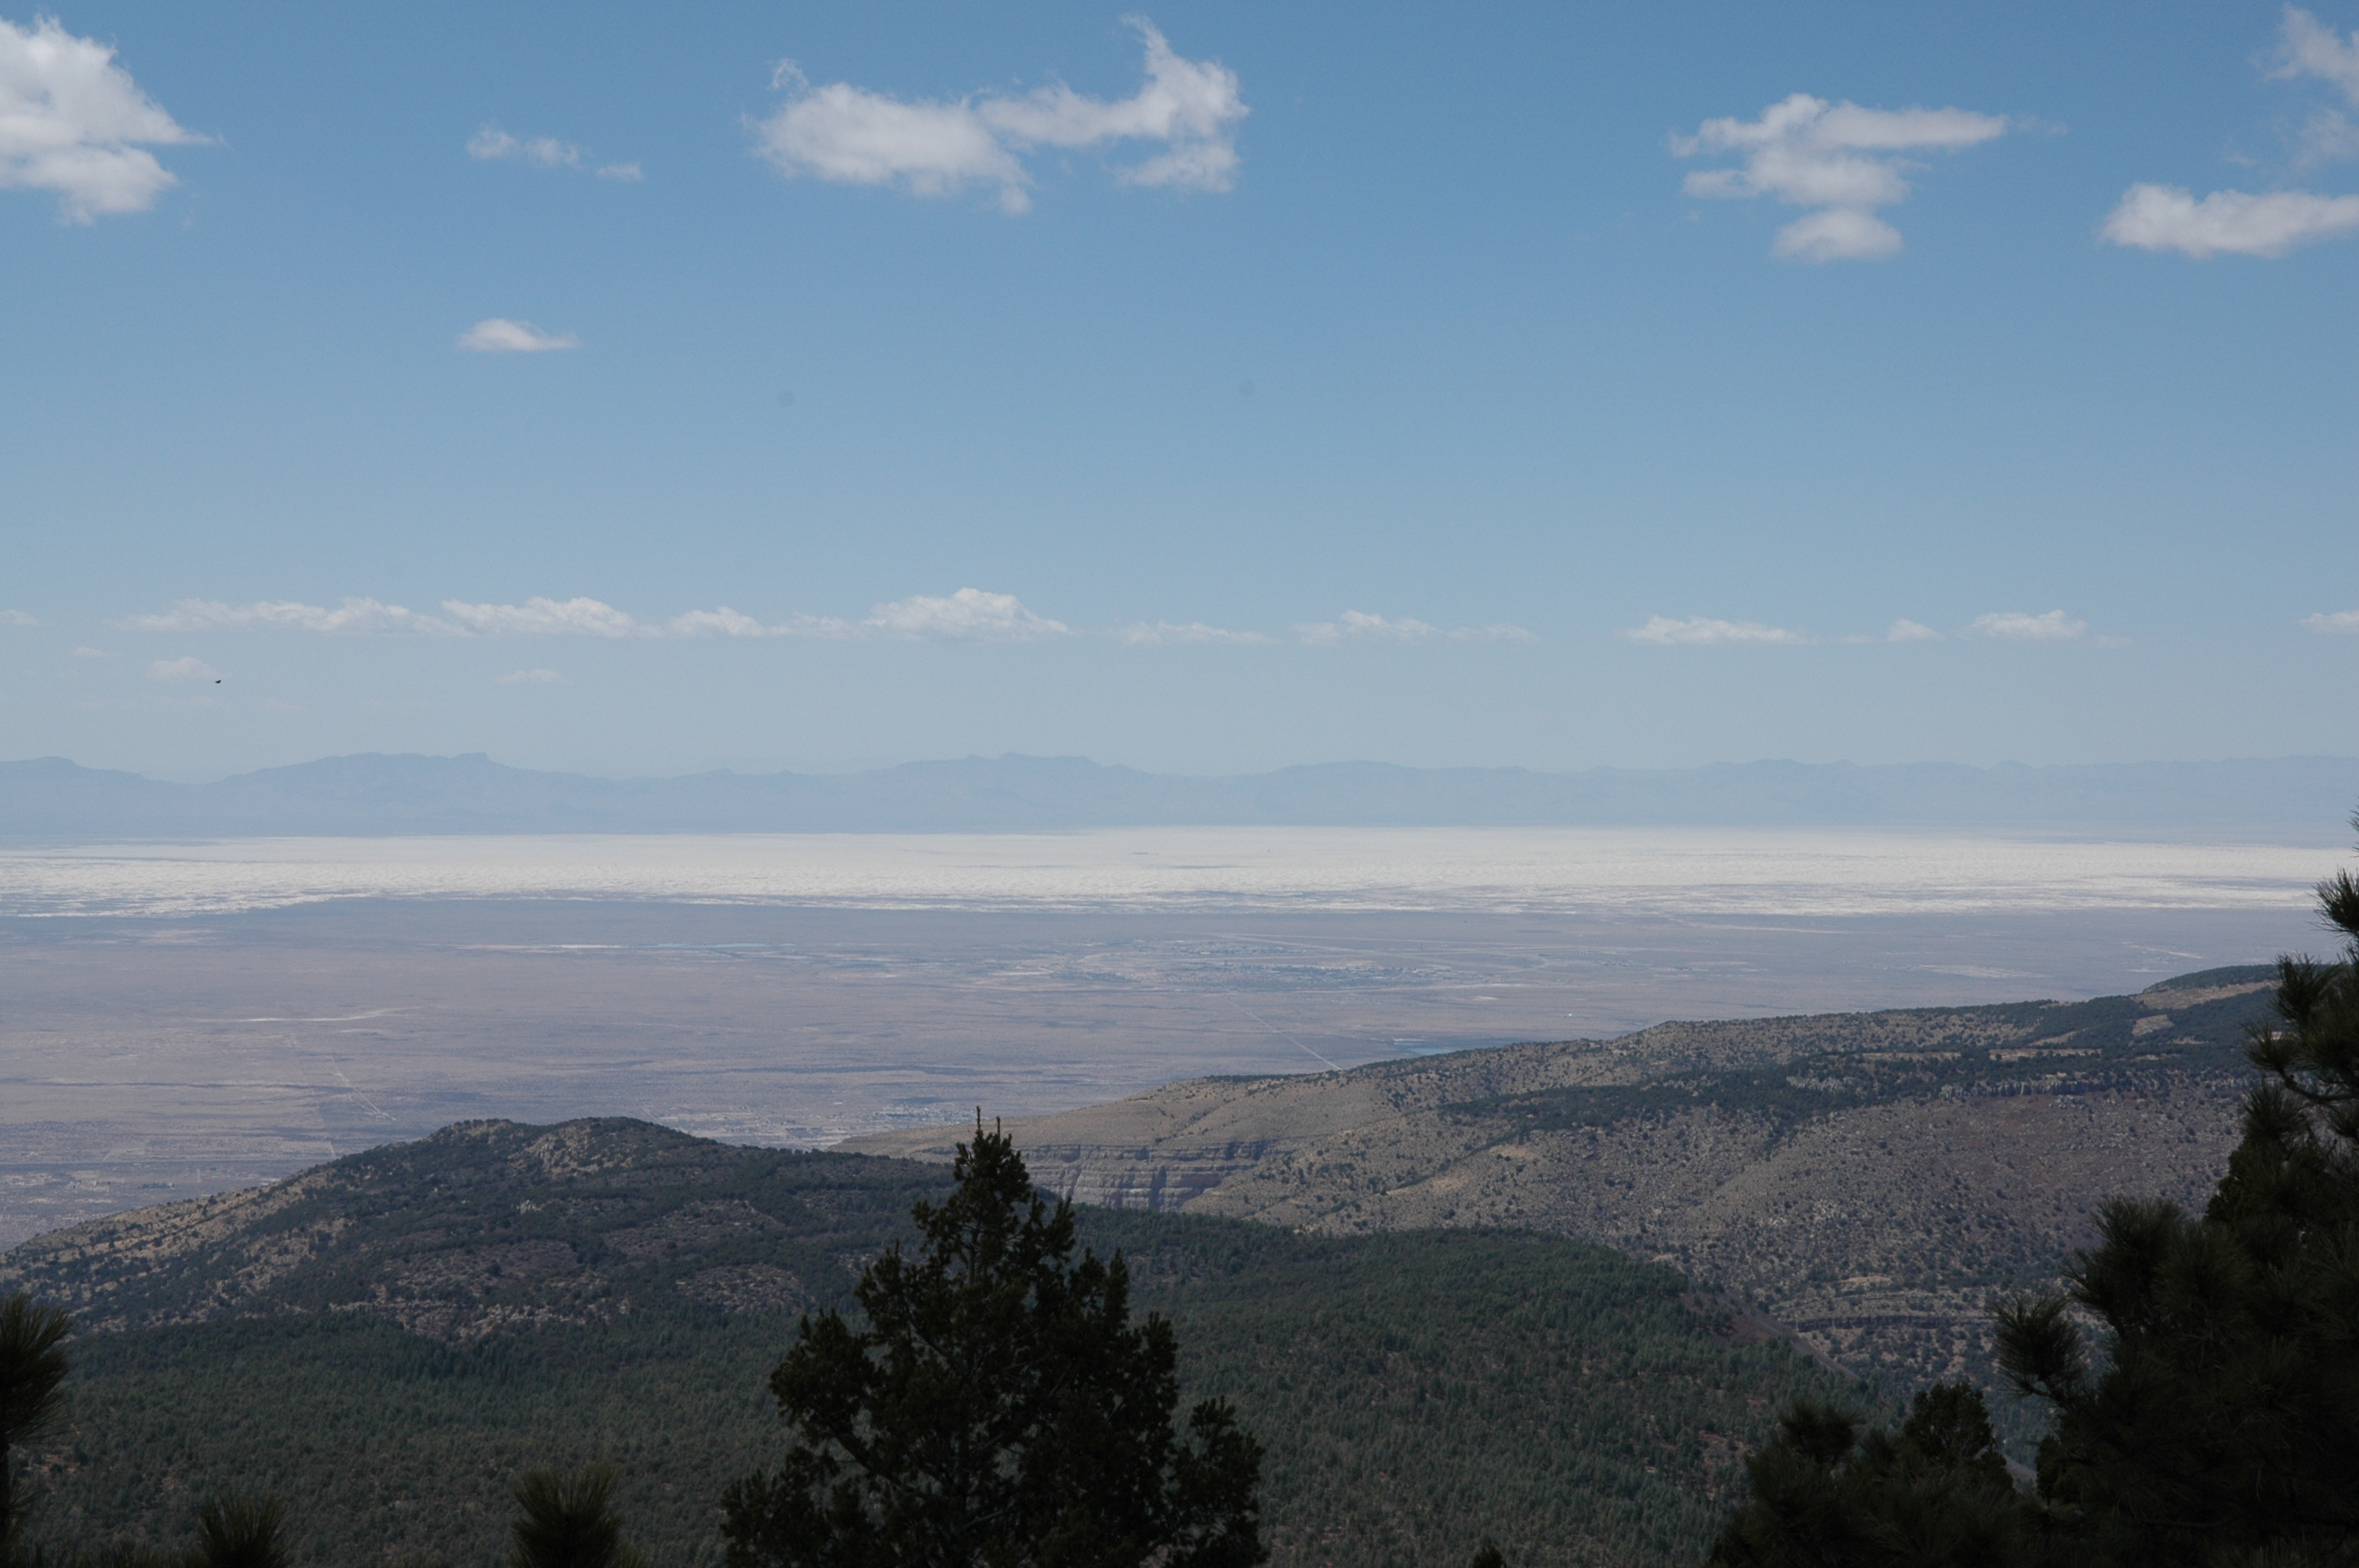 Tularosa Basin, New Mexico, from Apache Point Observatory